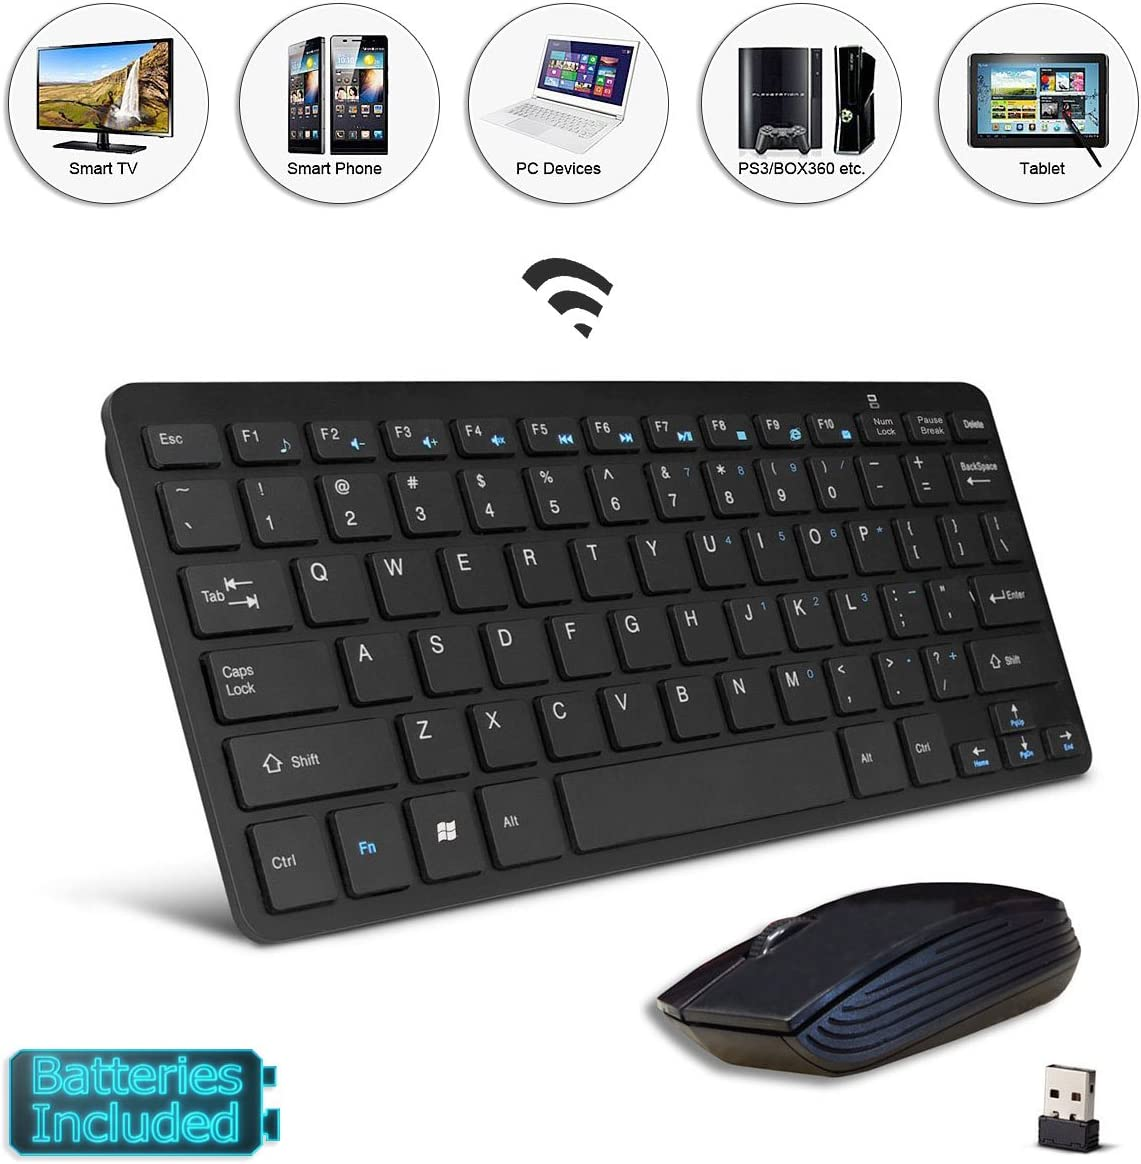 Black Wireless Mini Ultra Slim Keyboard and Mouse For Easy Smart TV Contol for Sony KD43XE7002BU 43 Smart TV